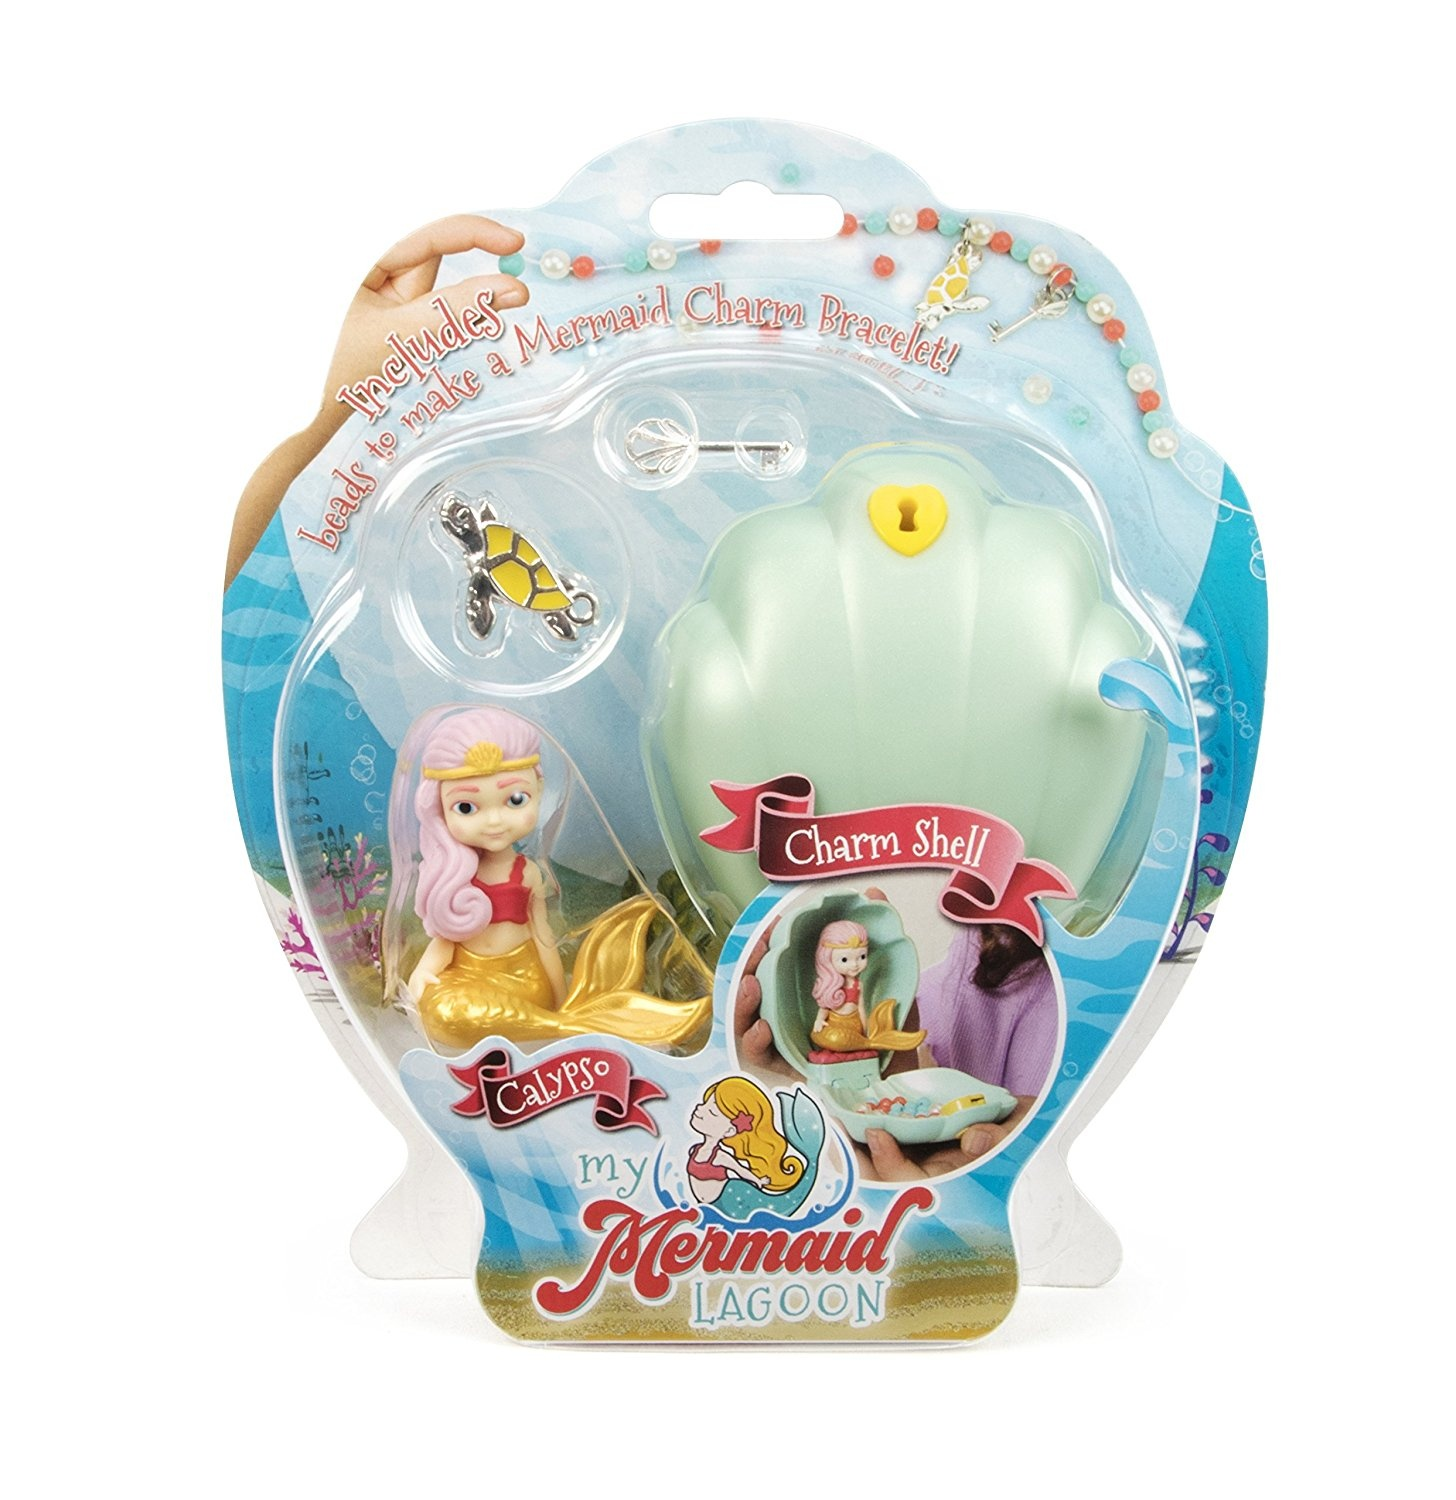 MY MERMAID LAGOON MARINAS LAGOON PLAYSET